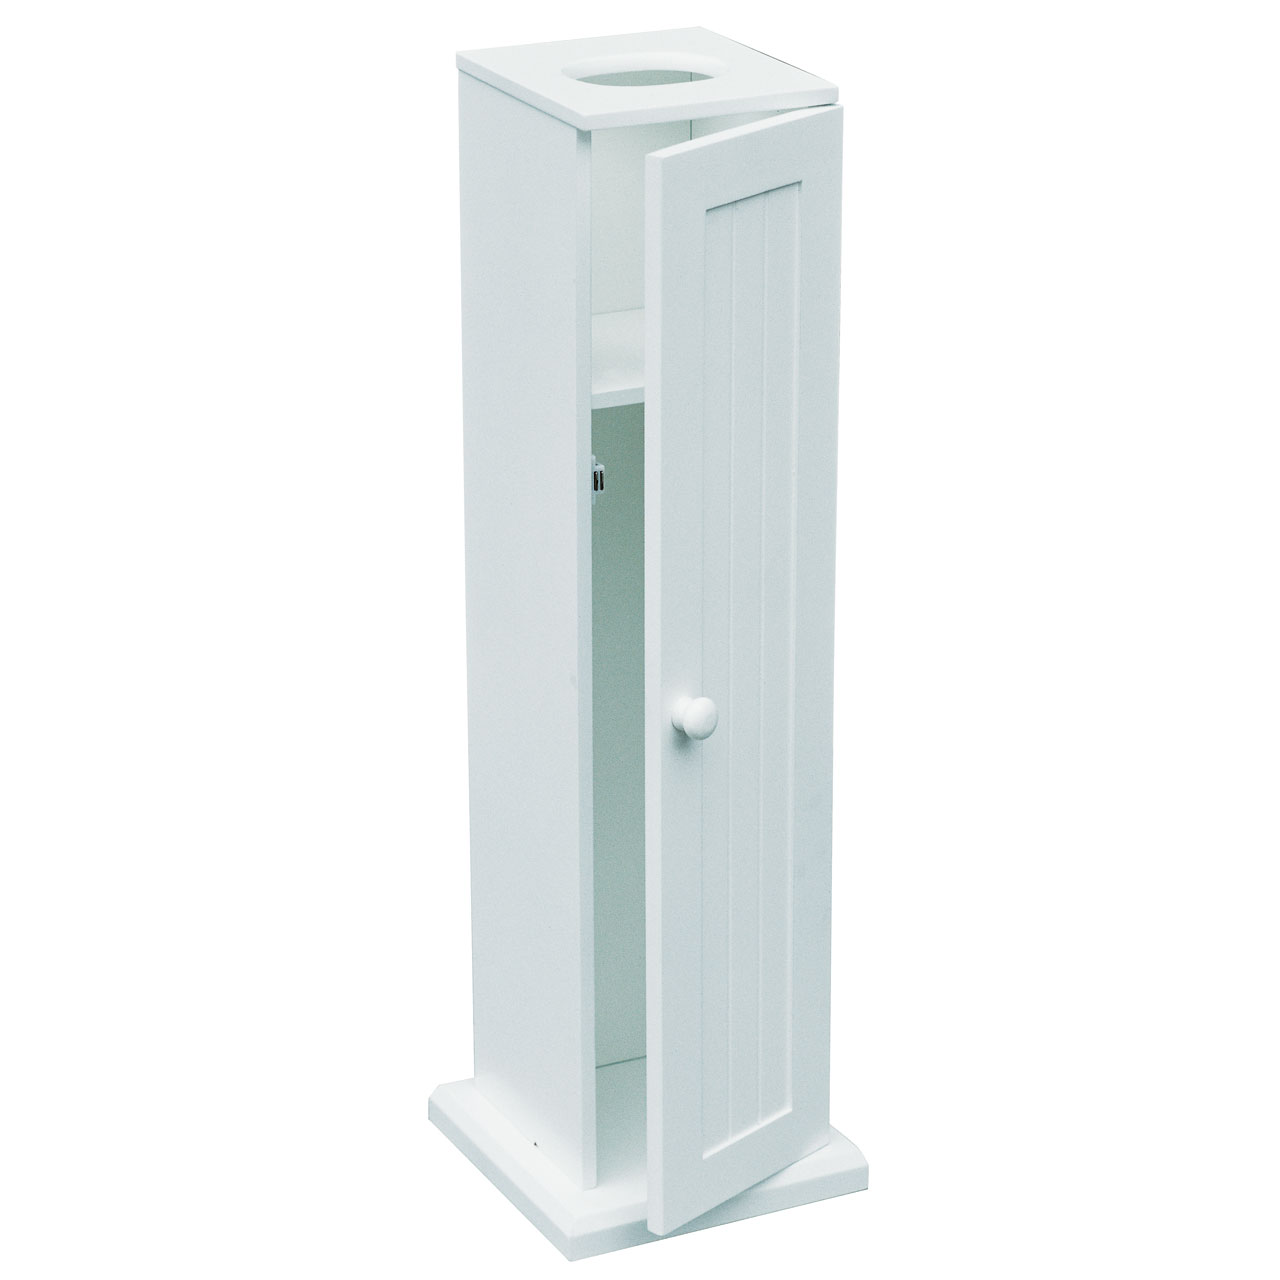 new white wood portland toilet paper cabinet 5 roll